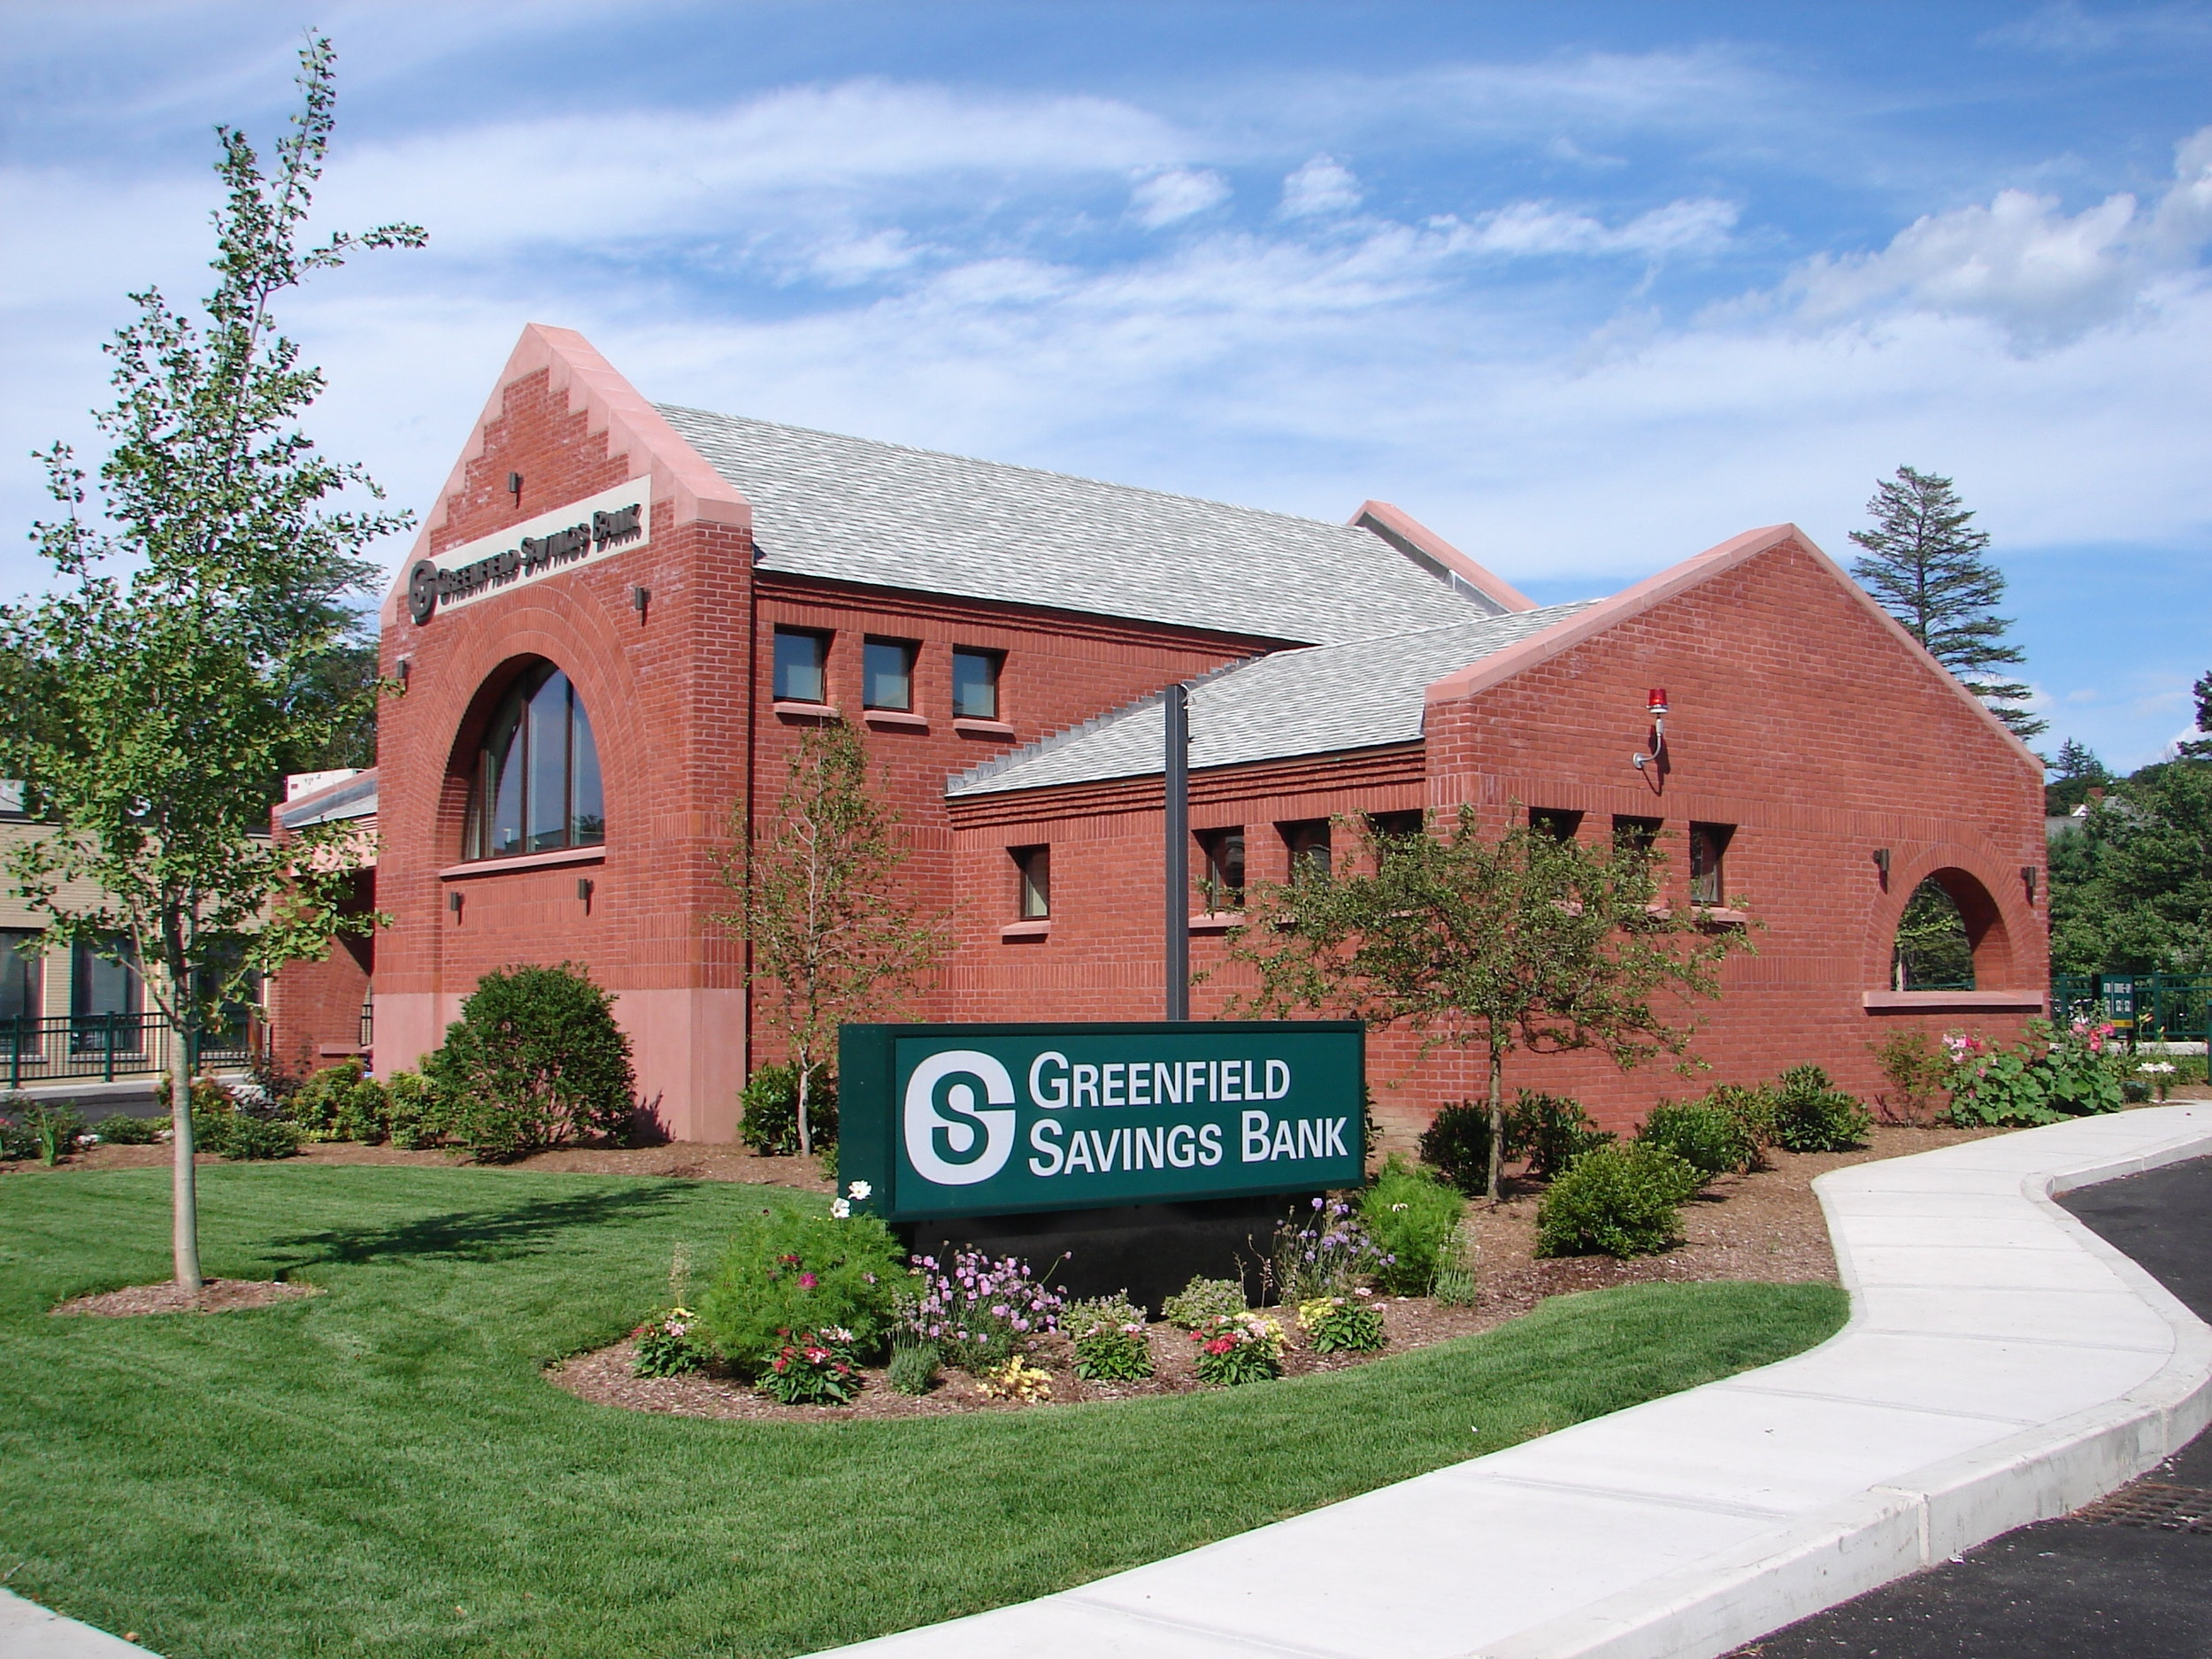 Greenfield Savings Bank Drive-Thru